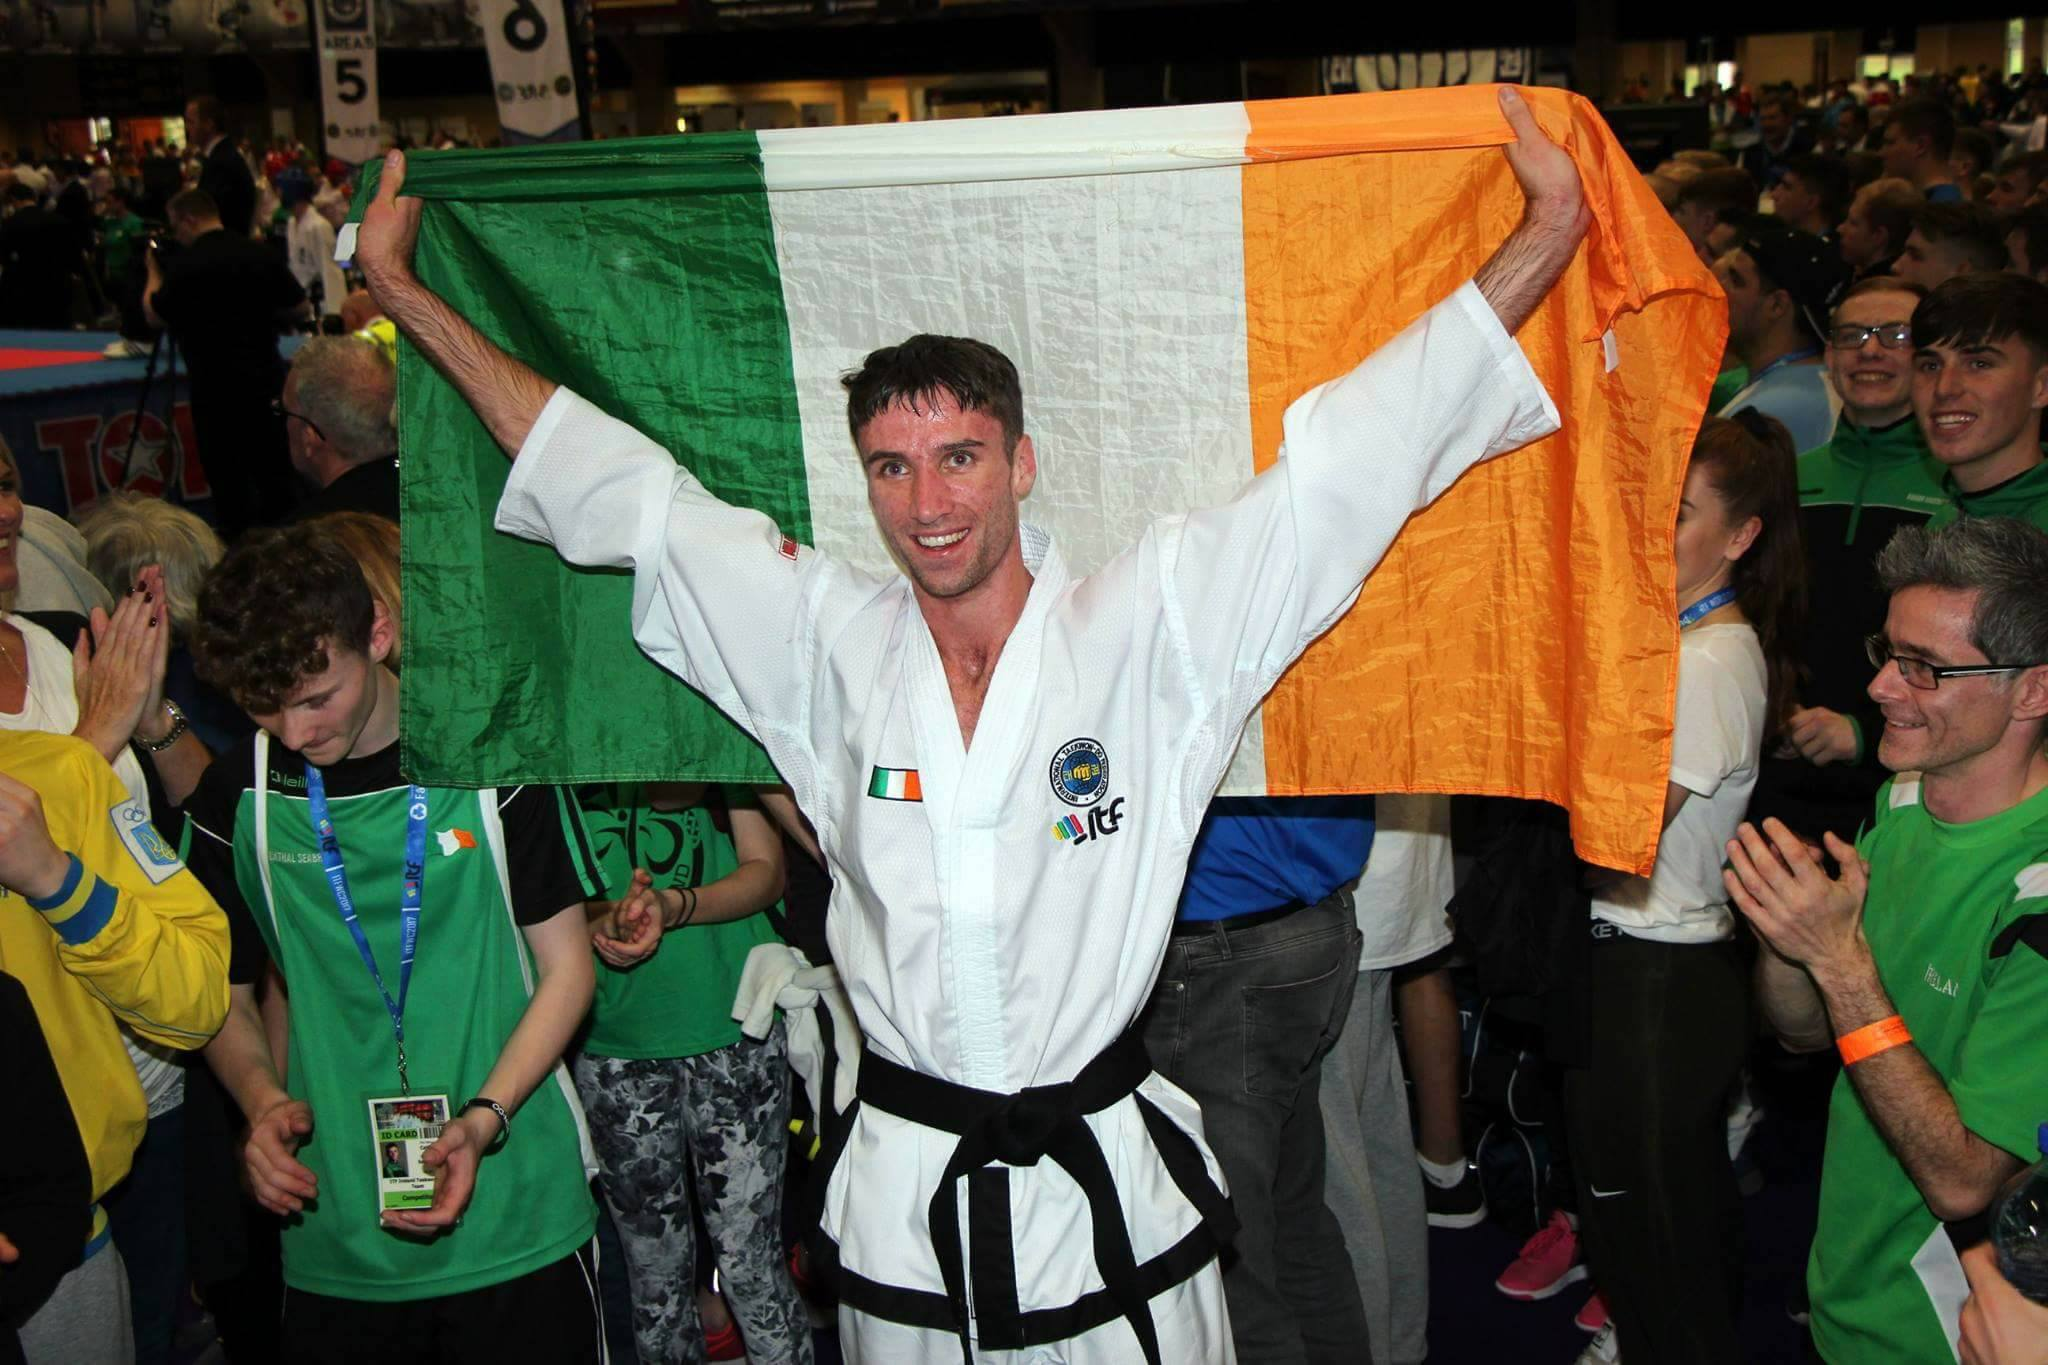 Adam Shelley celebrates victory at the 2017 WTF Taekwondo Championships in Citywest. Image Credit: Legacy Taekwondo Drogheda